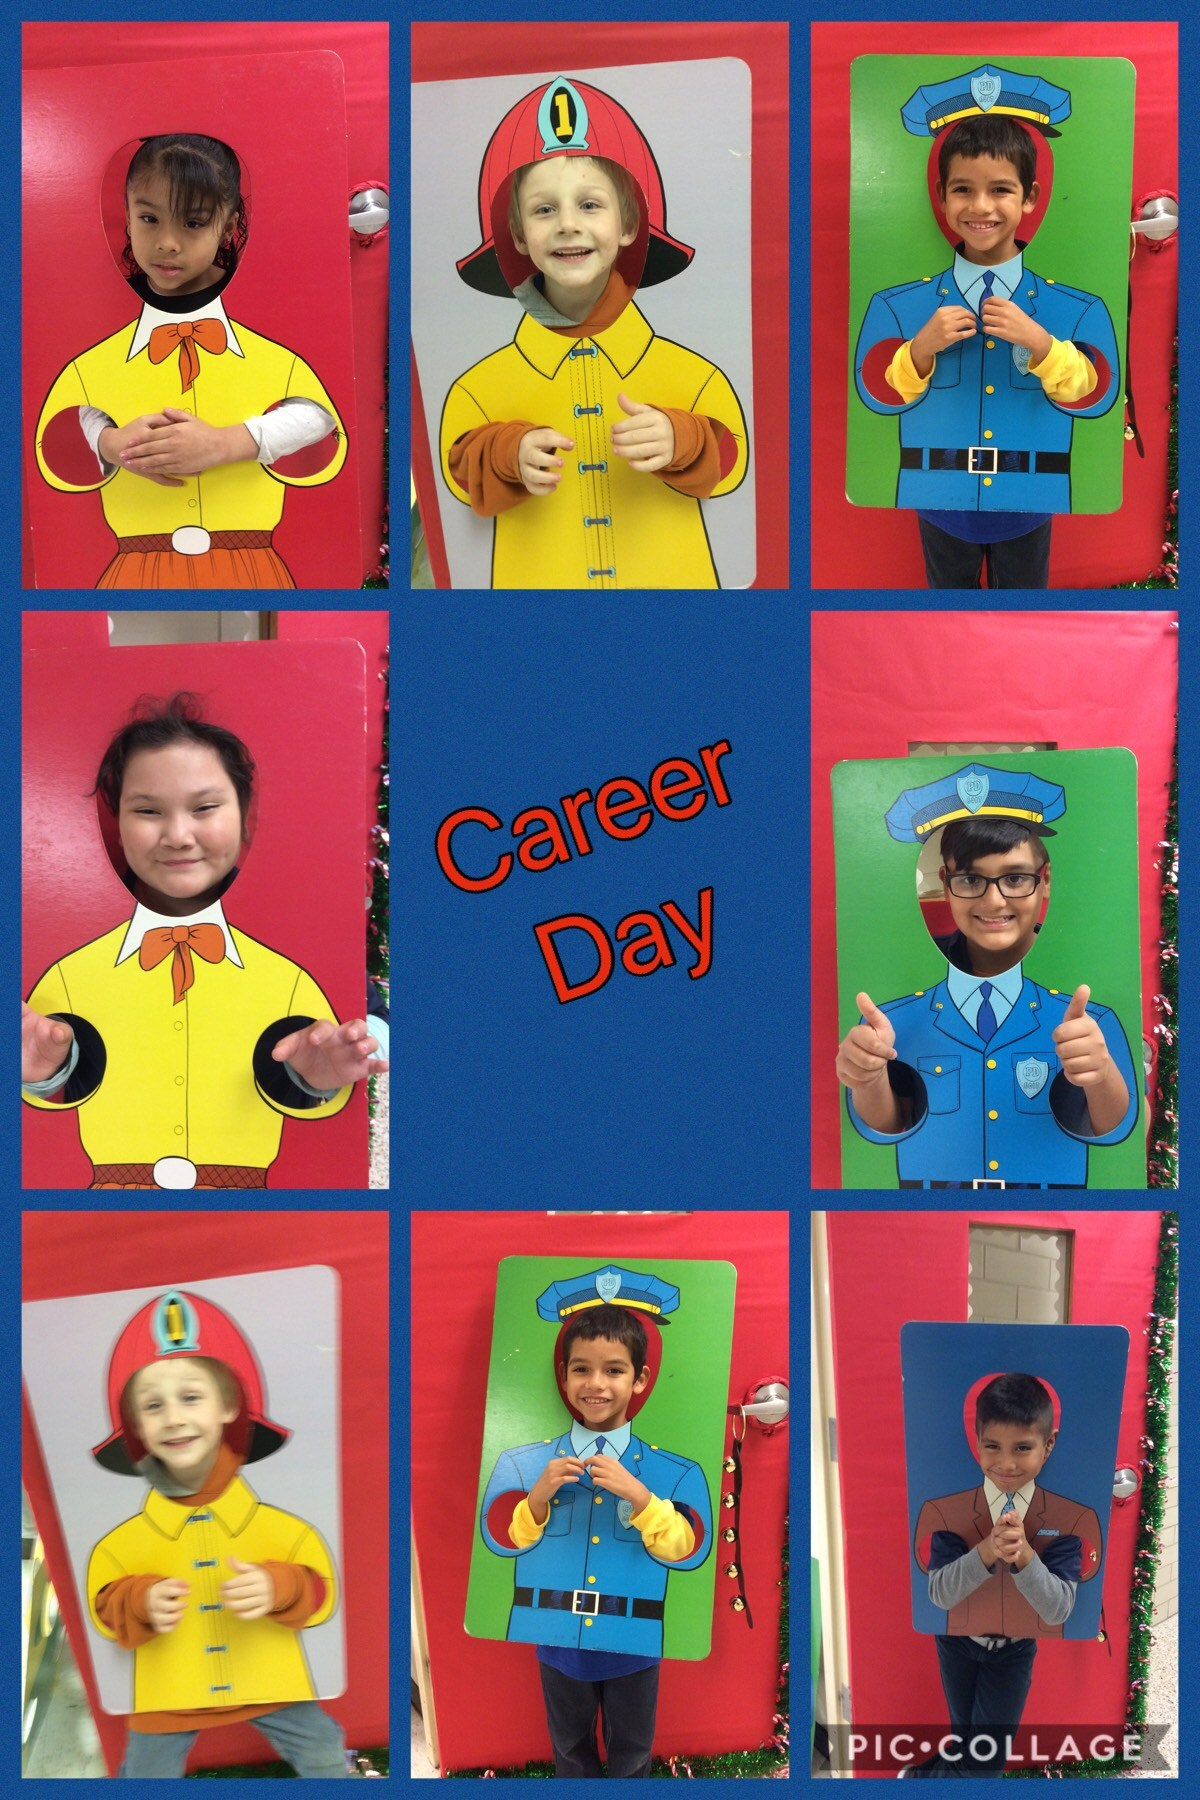 Students participate in career day